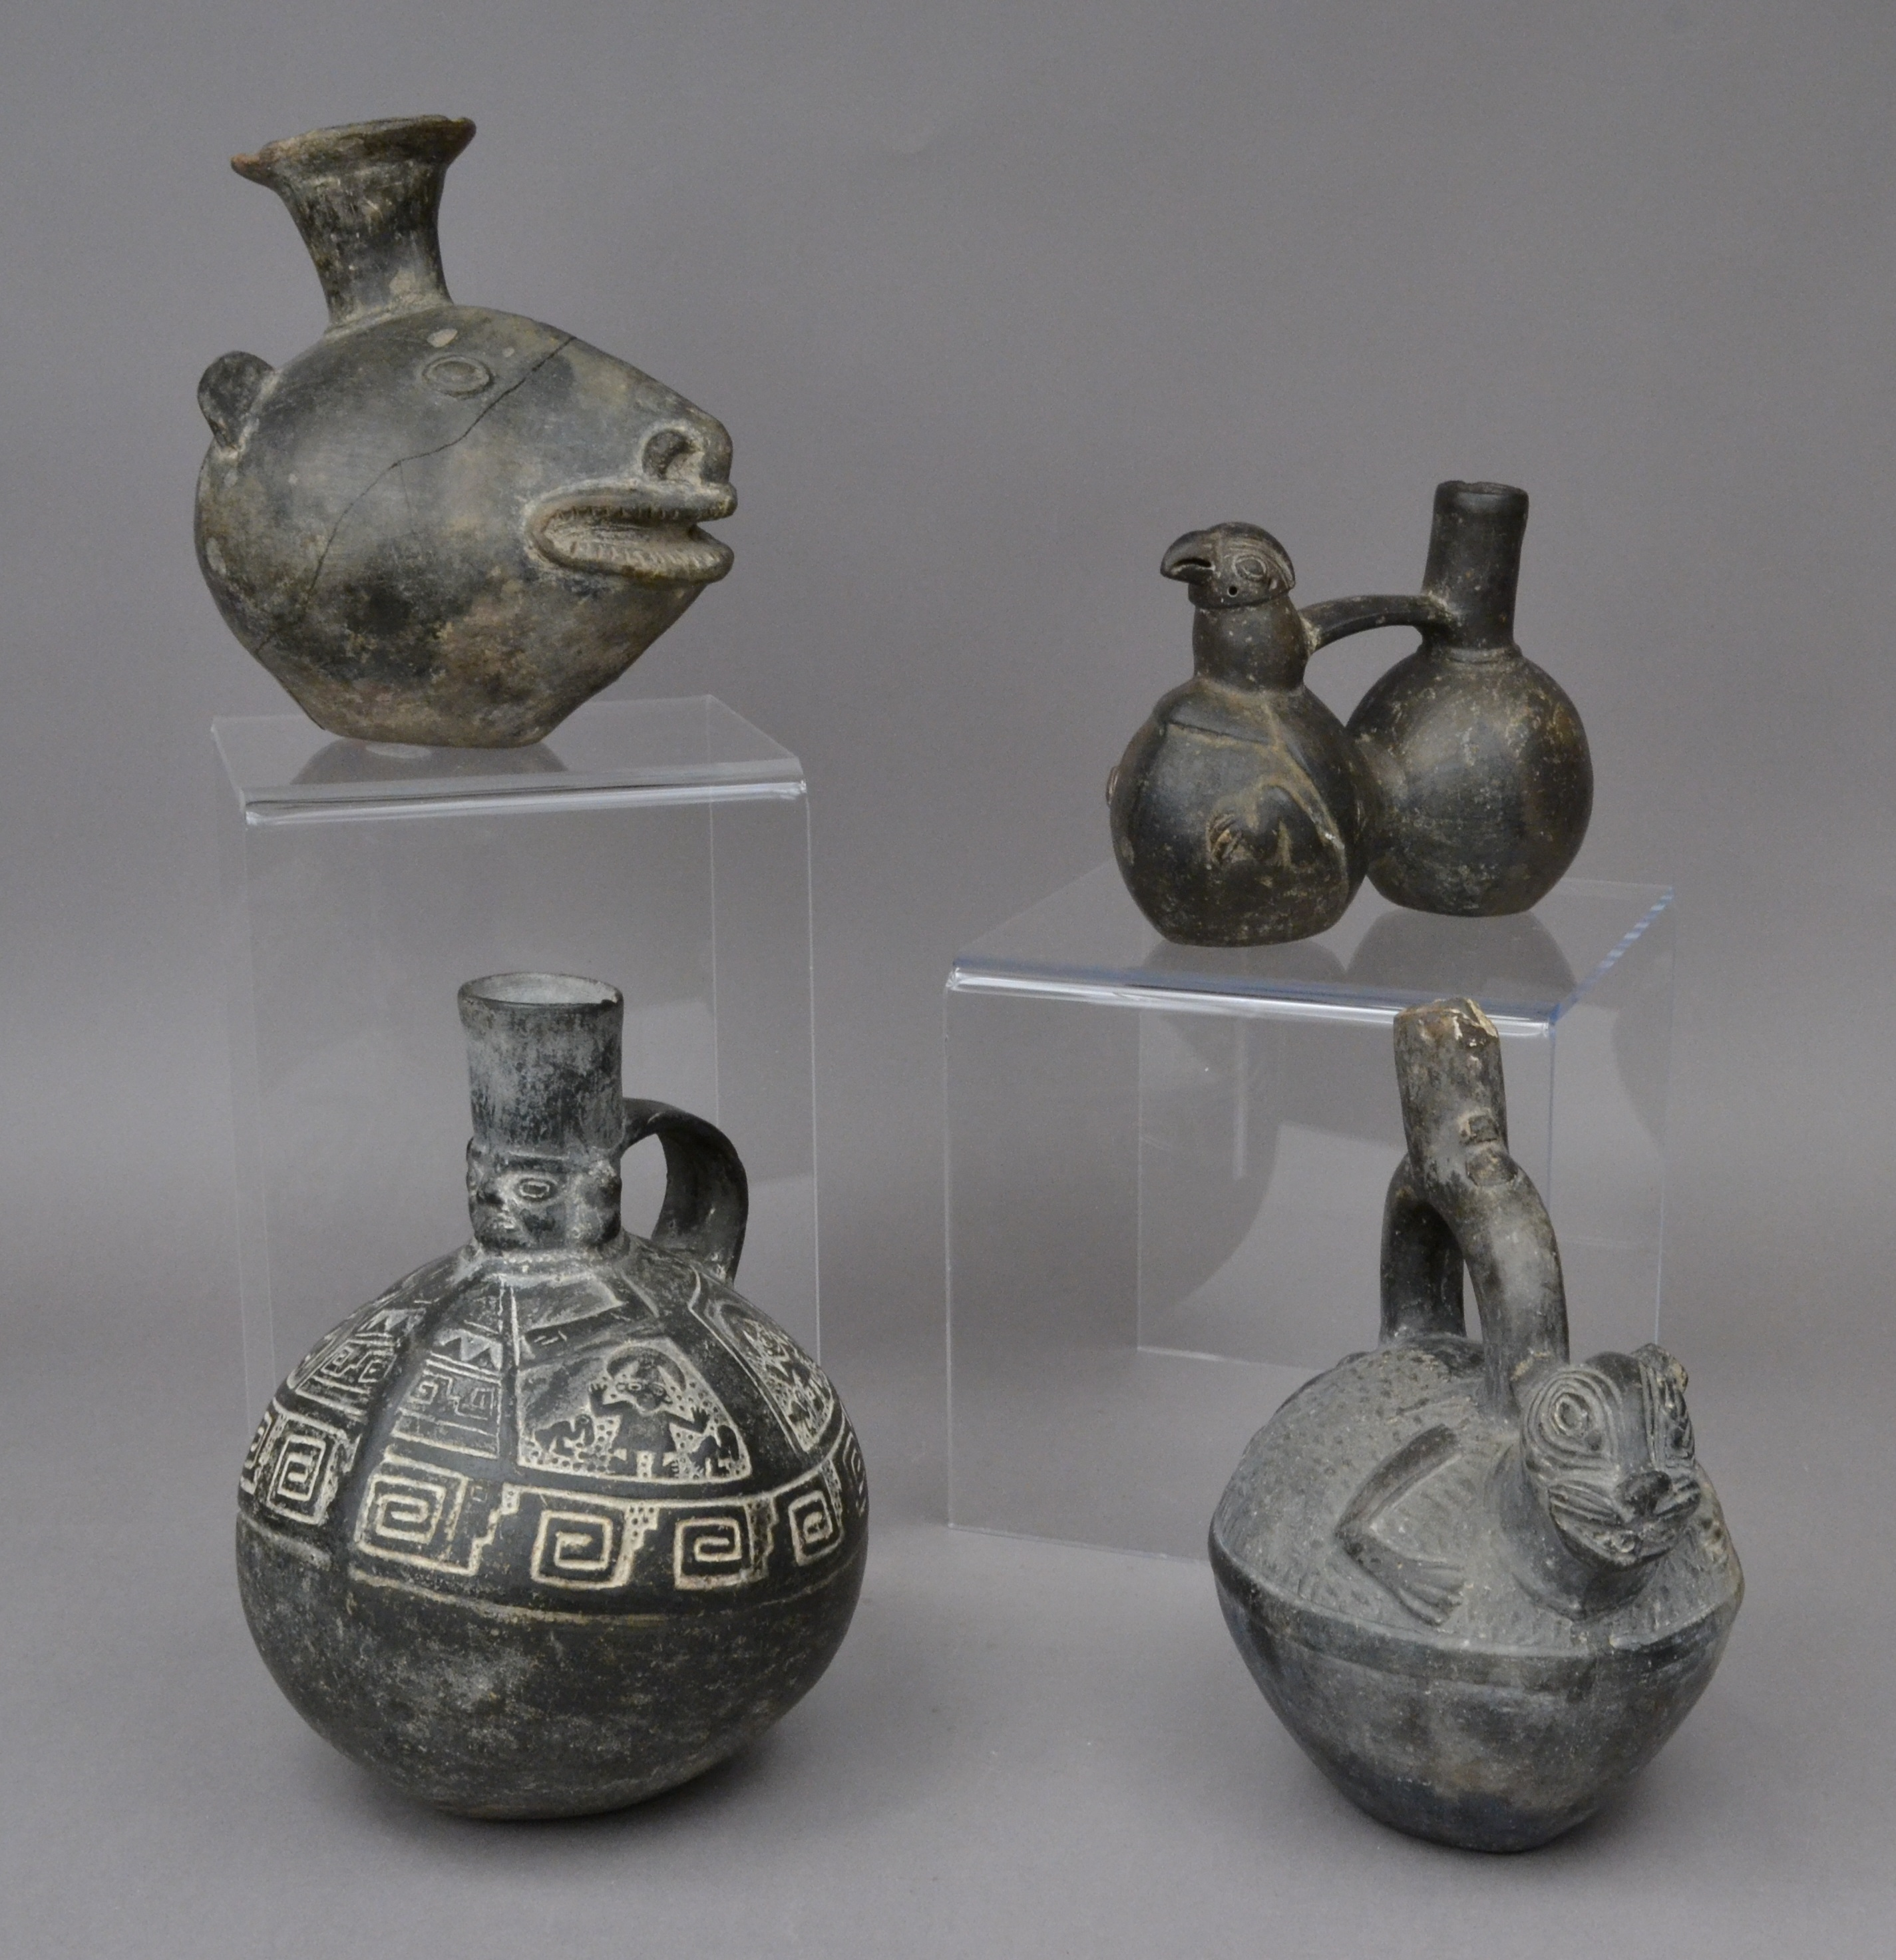 Chimu pottery from the Ancient World collection (image from The Boston Children's Museum)